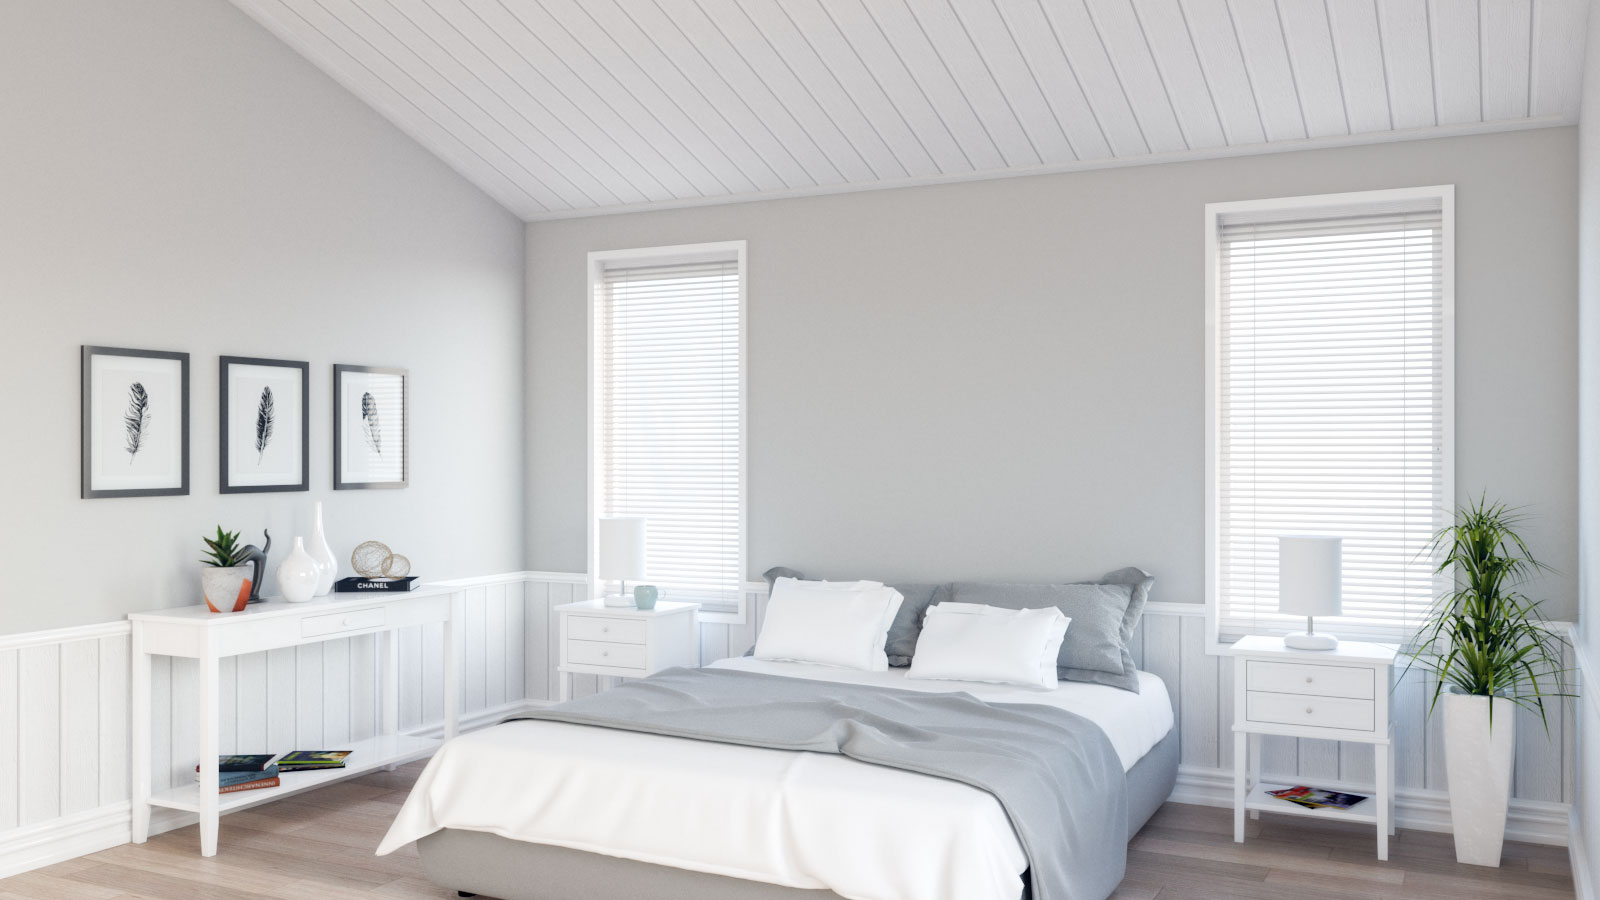 Minimalist scandinavian gray bedroom